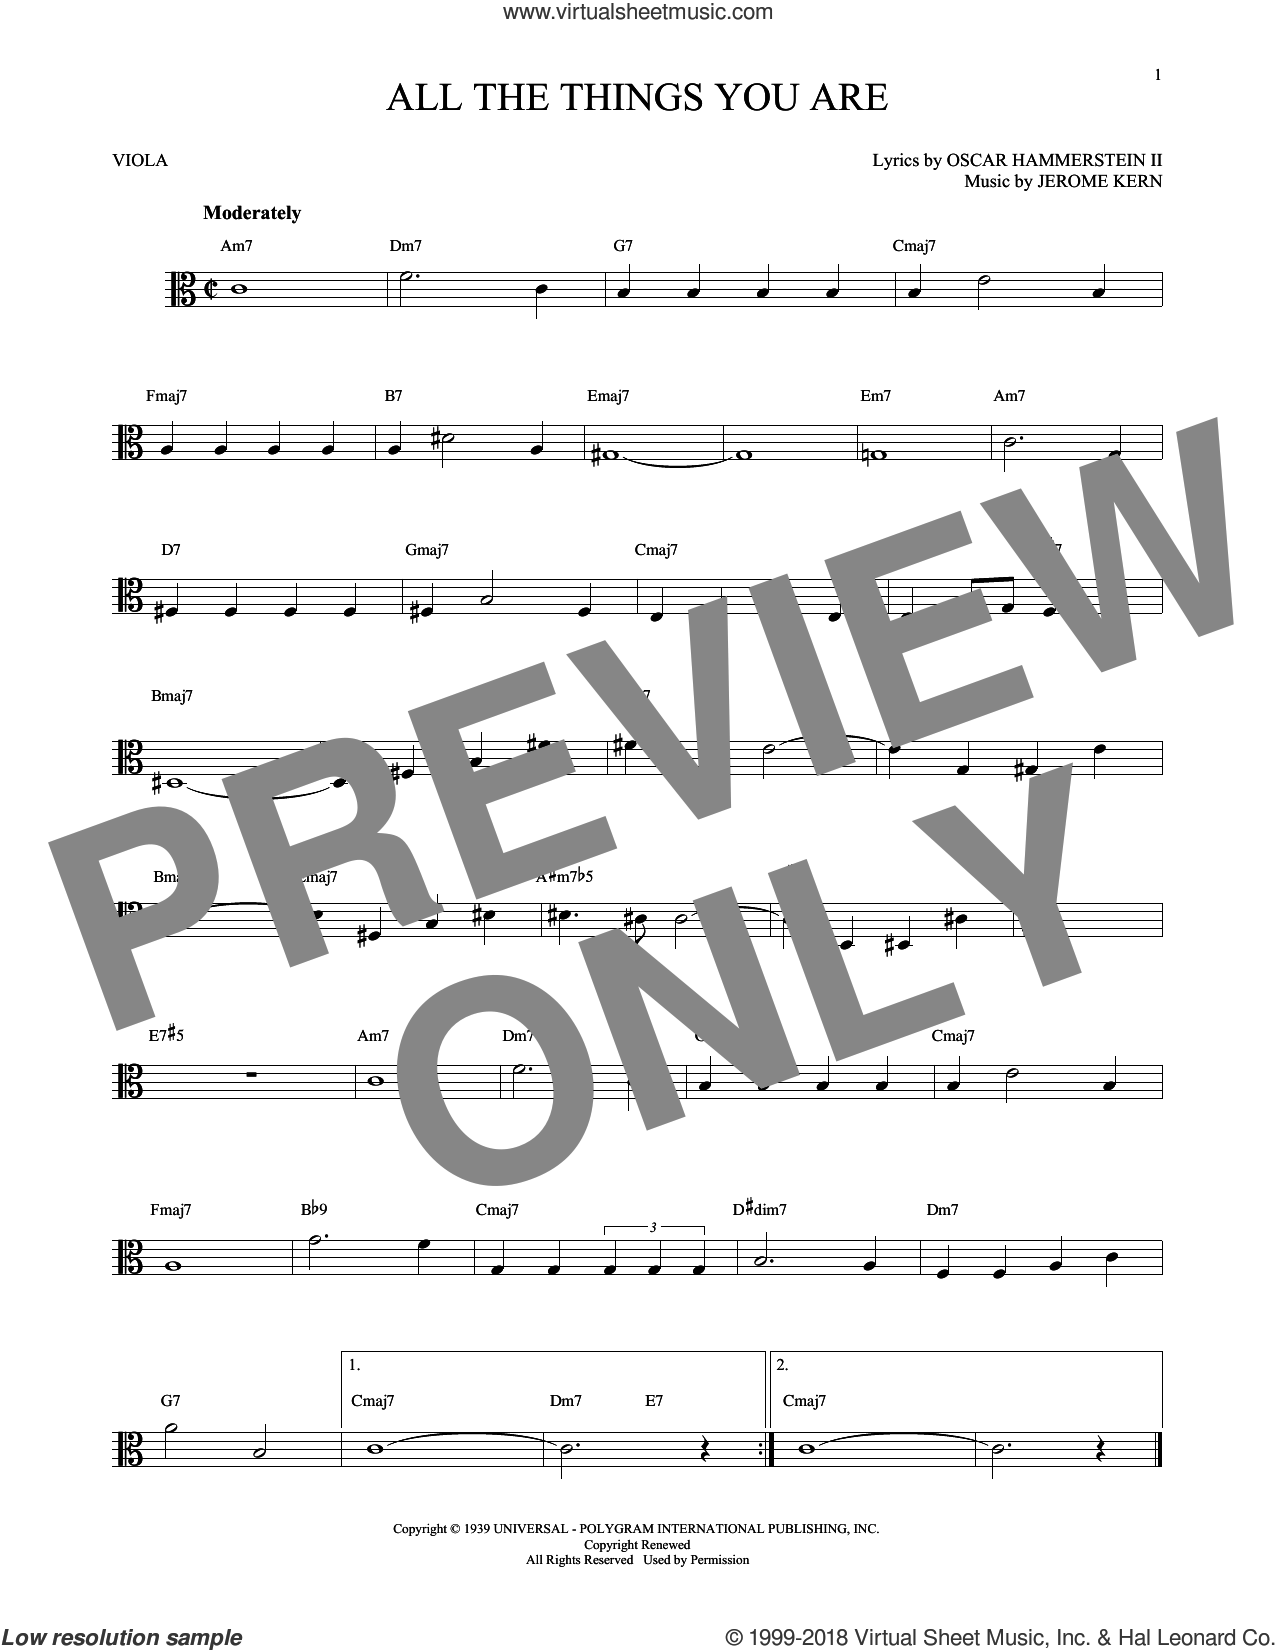 All The Things You Are sheet music for viola solo by Oscar II Hammerstein, Jack Leonard with Tommy Dorsey Orchestra and Jerome Kern, intermediate skill level